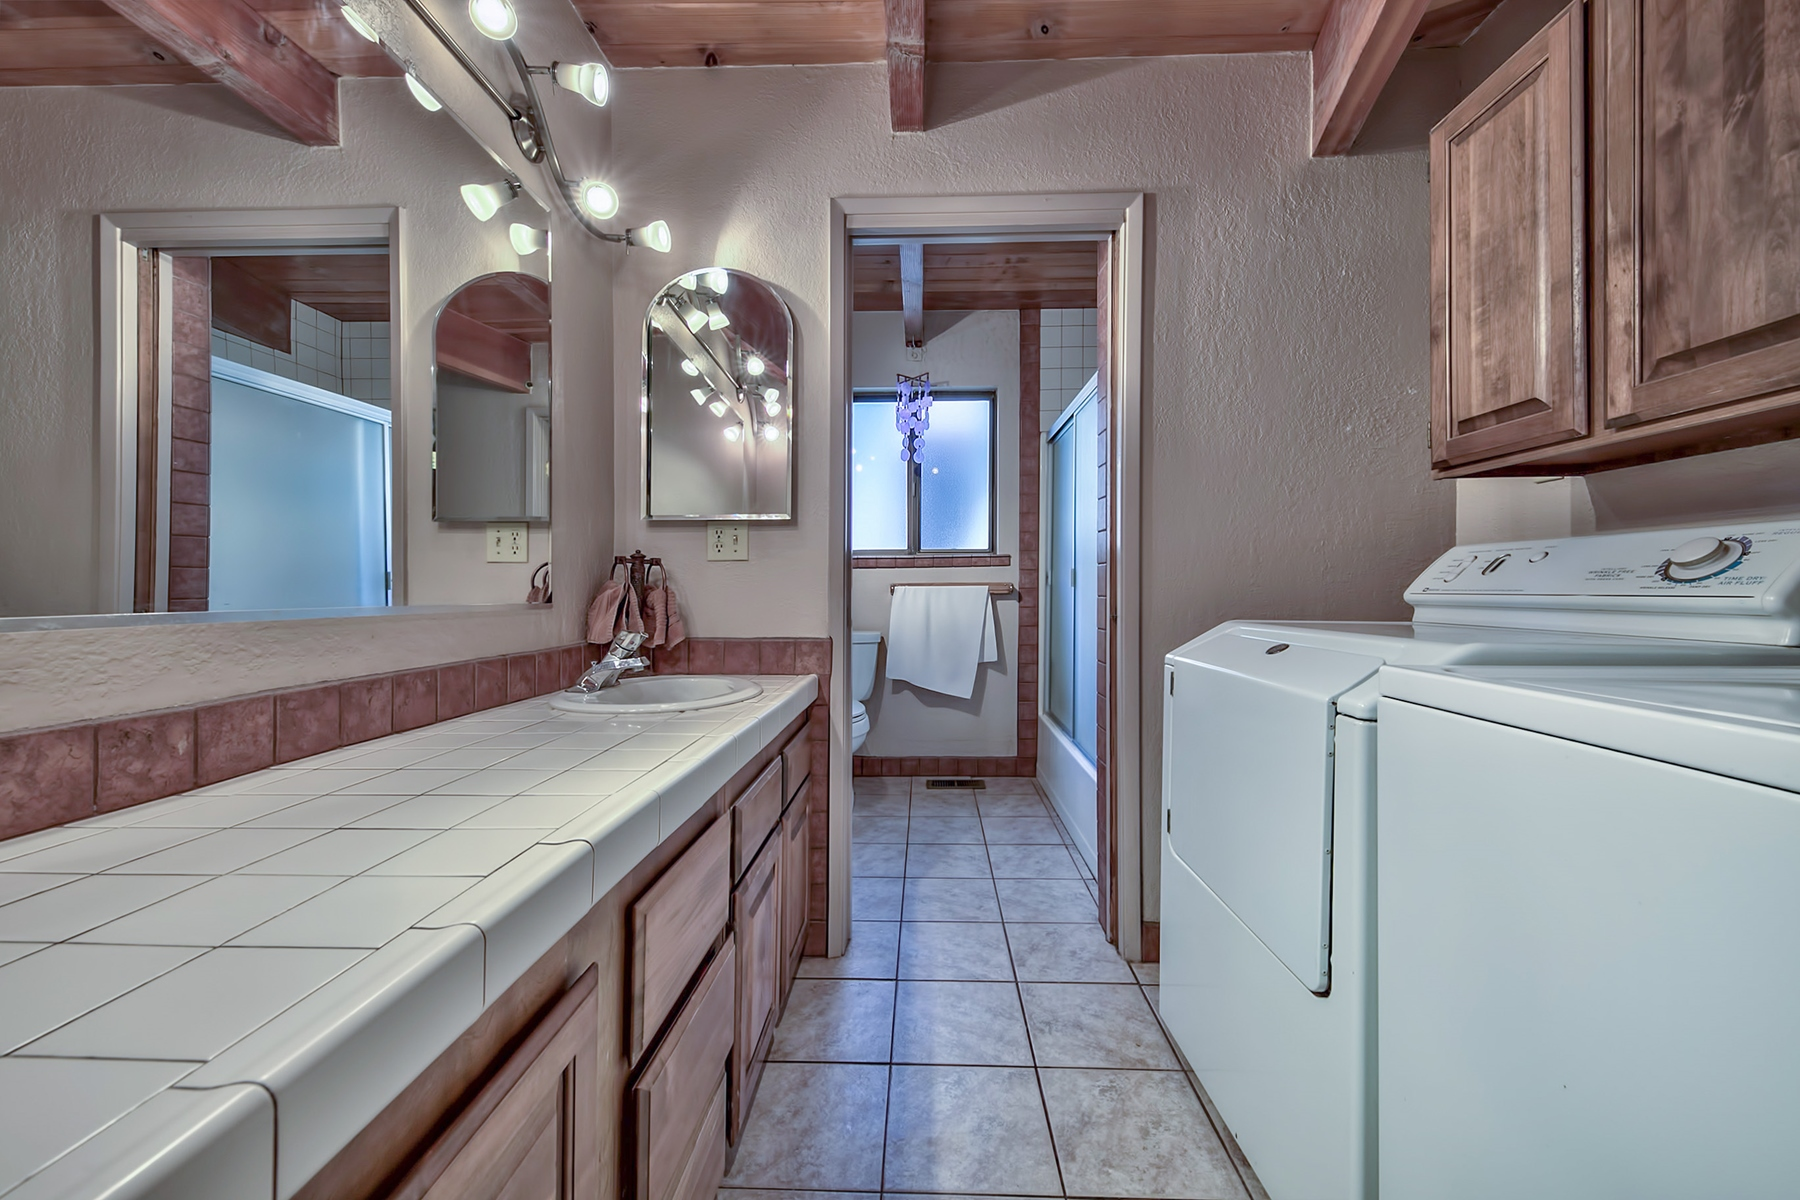 Additional photo for property listing at 2363 Marshall Trail, South Lake Tahoe, CA 2363 Marshall Trail South Lake Tahoe, California 96151 United States